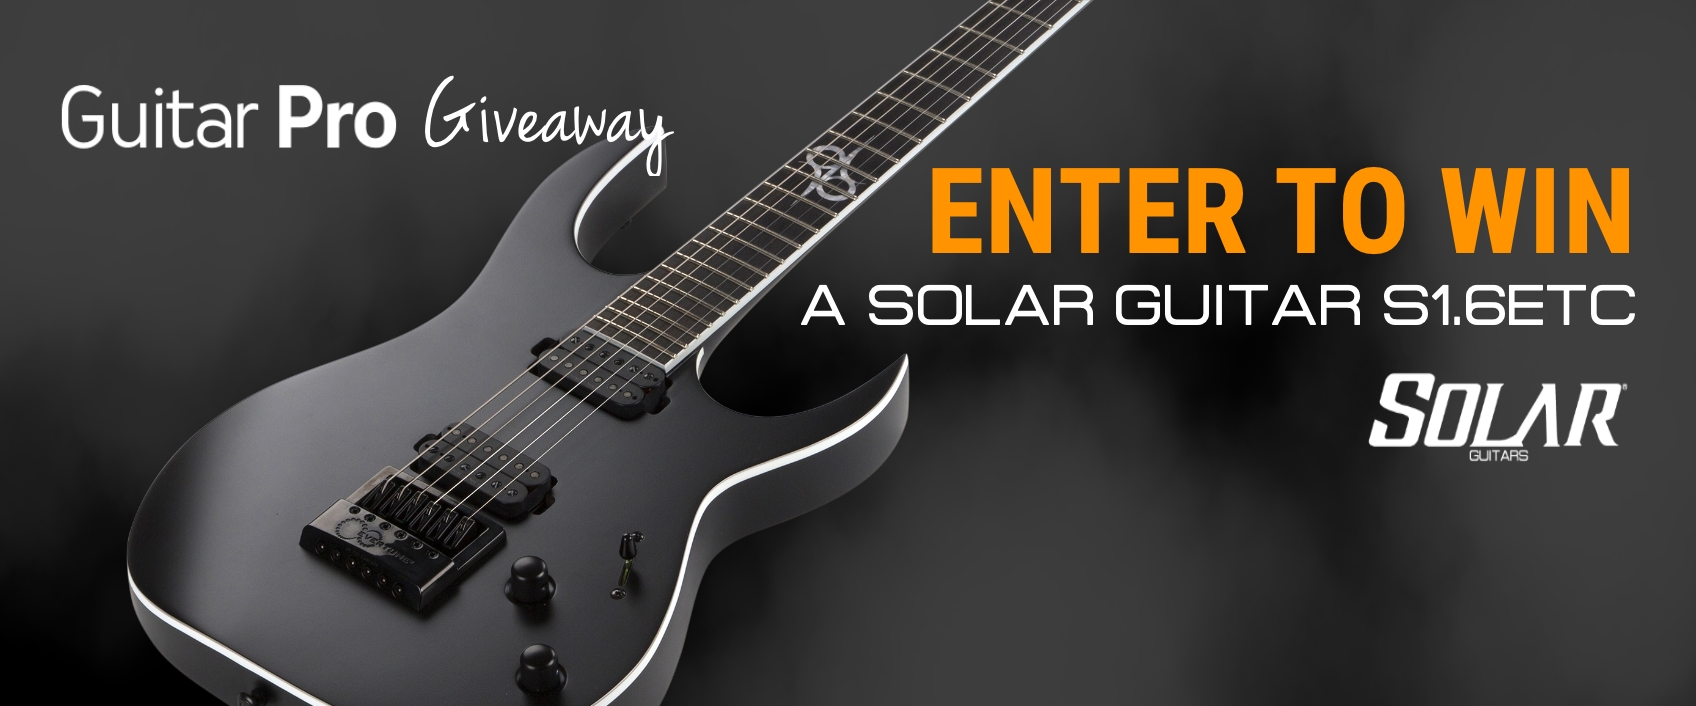 [Closed] [Guitar Pro Giveaway] Win a Solar guitar!